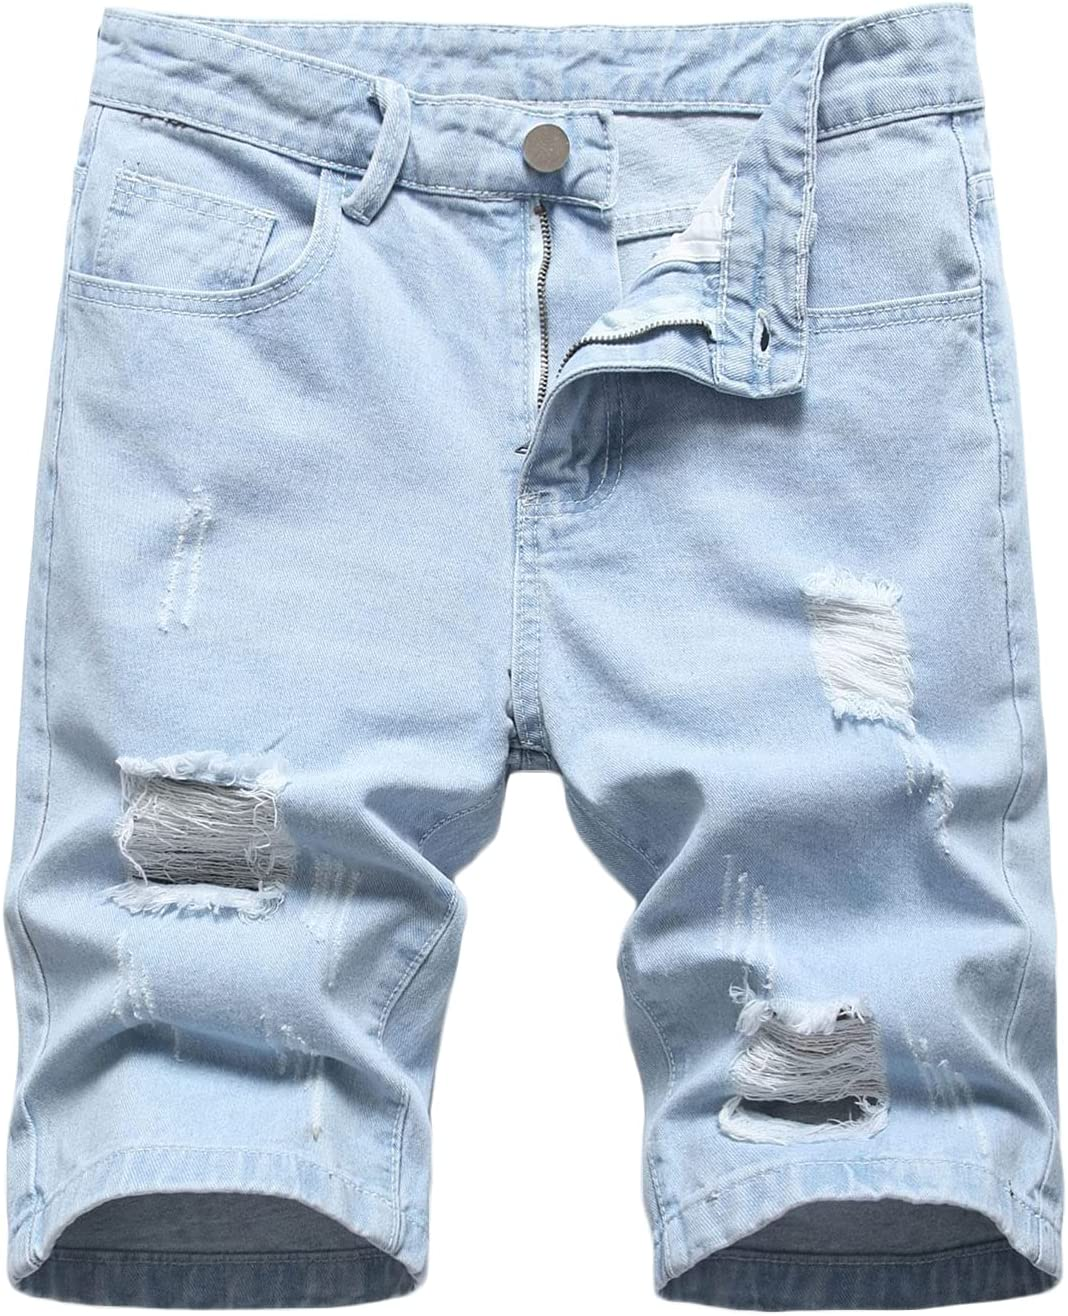 Men's Casual Loose Ripped Denim Shorts Washed Distressed Cotton Jeans Shorts Slim Fit Straight Jean Short-Pant with Hole (Light Blue,31)